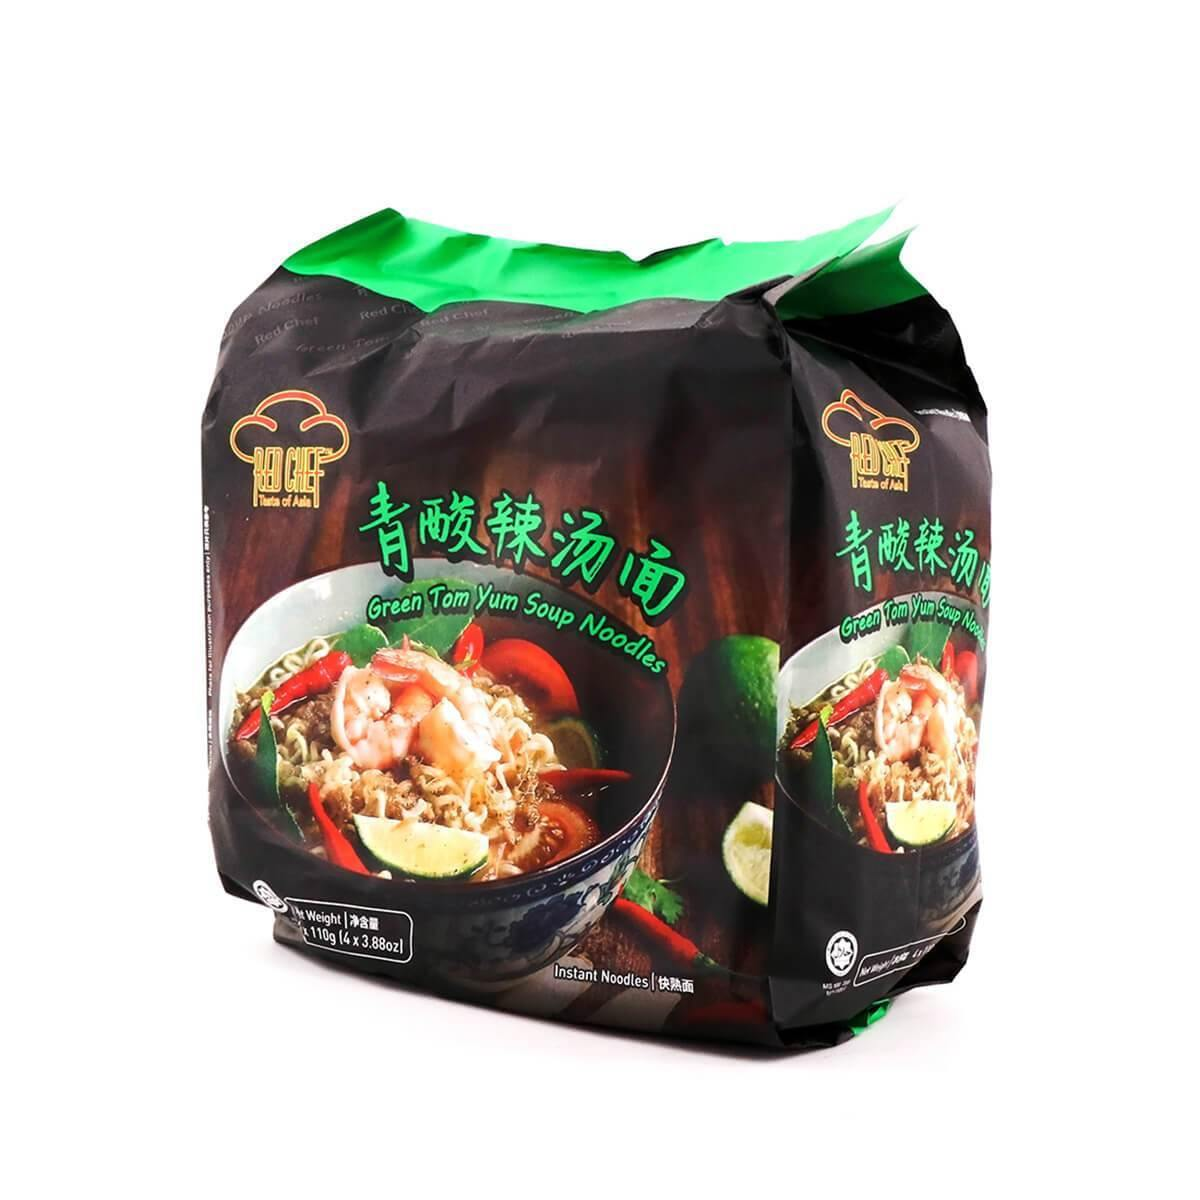 Red Chef Green Tom Yum Soup Noodles 4 PACKS 15.52 Oz (440 g) - 青酸辣汤面